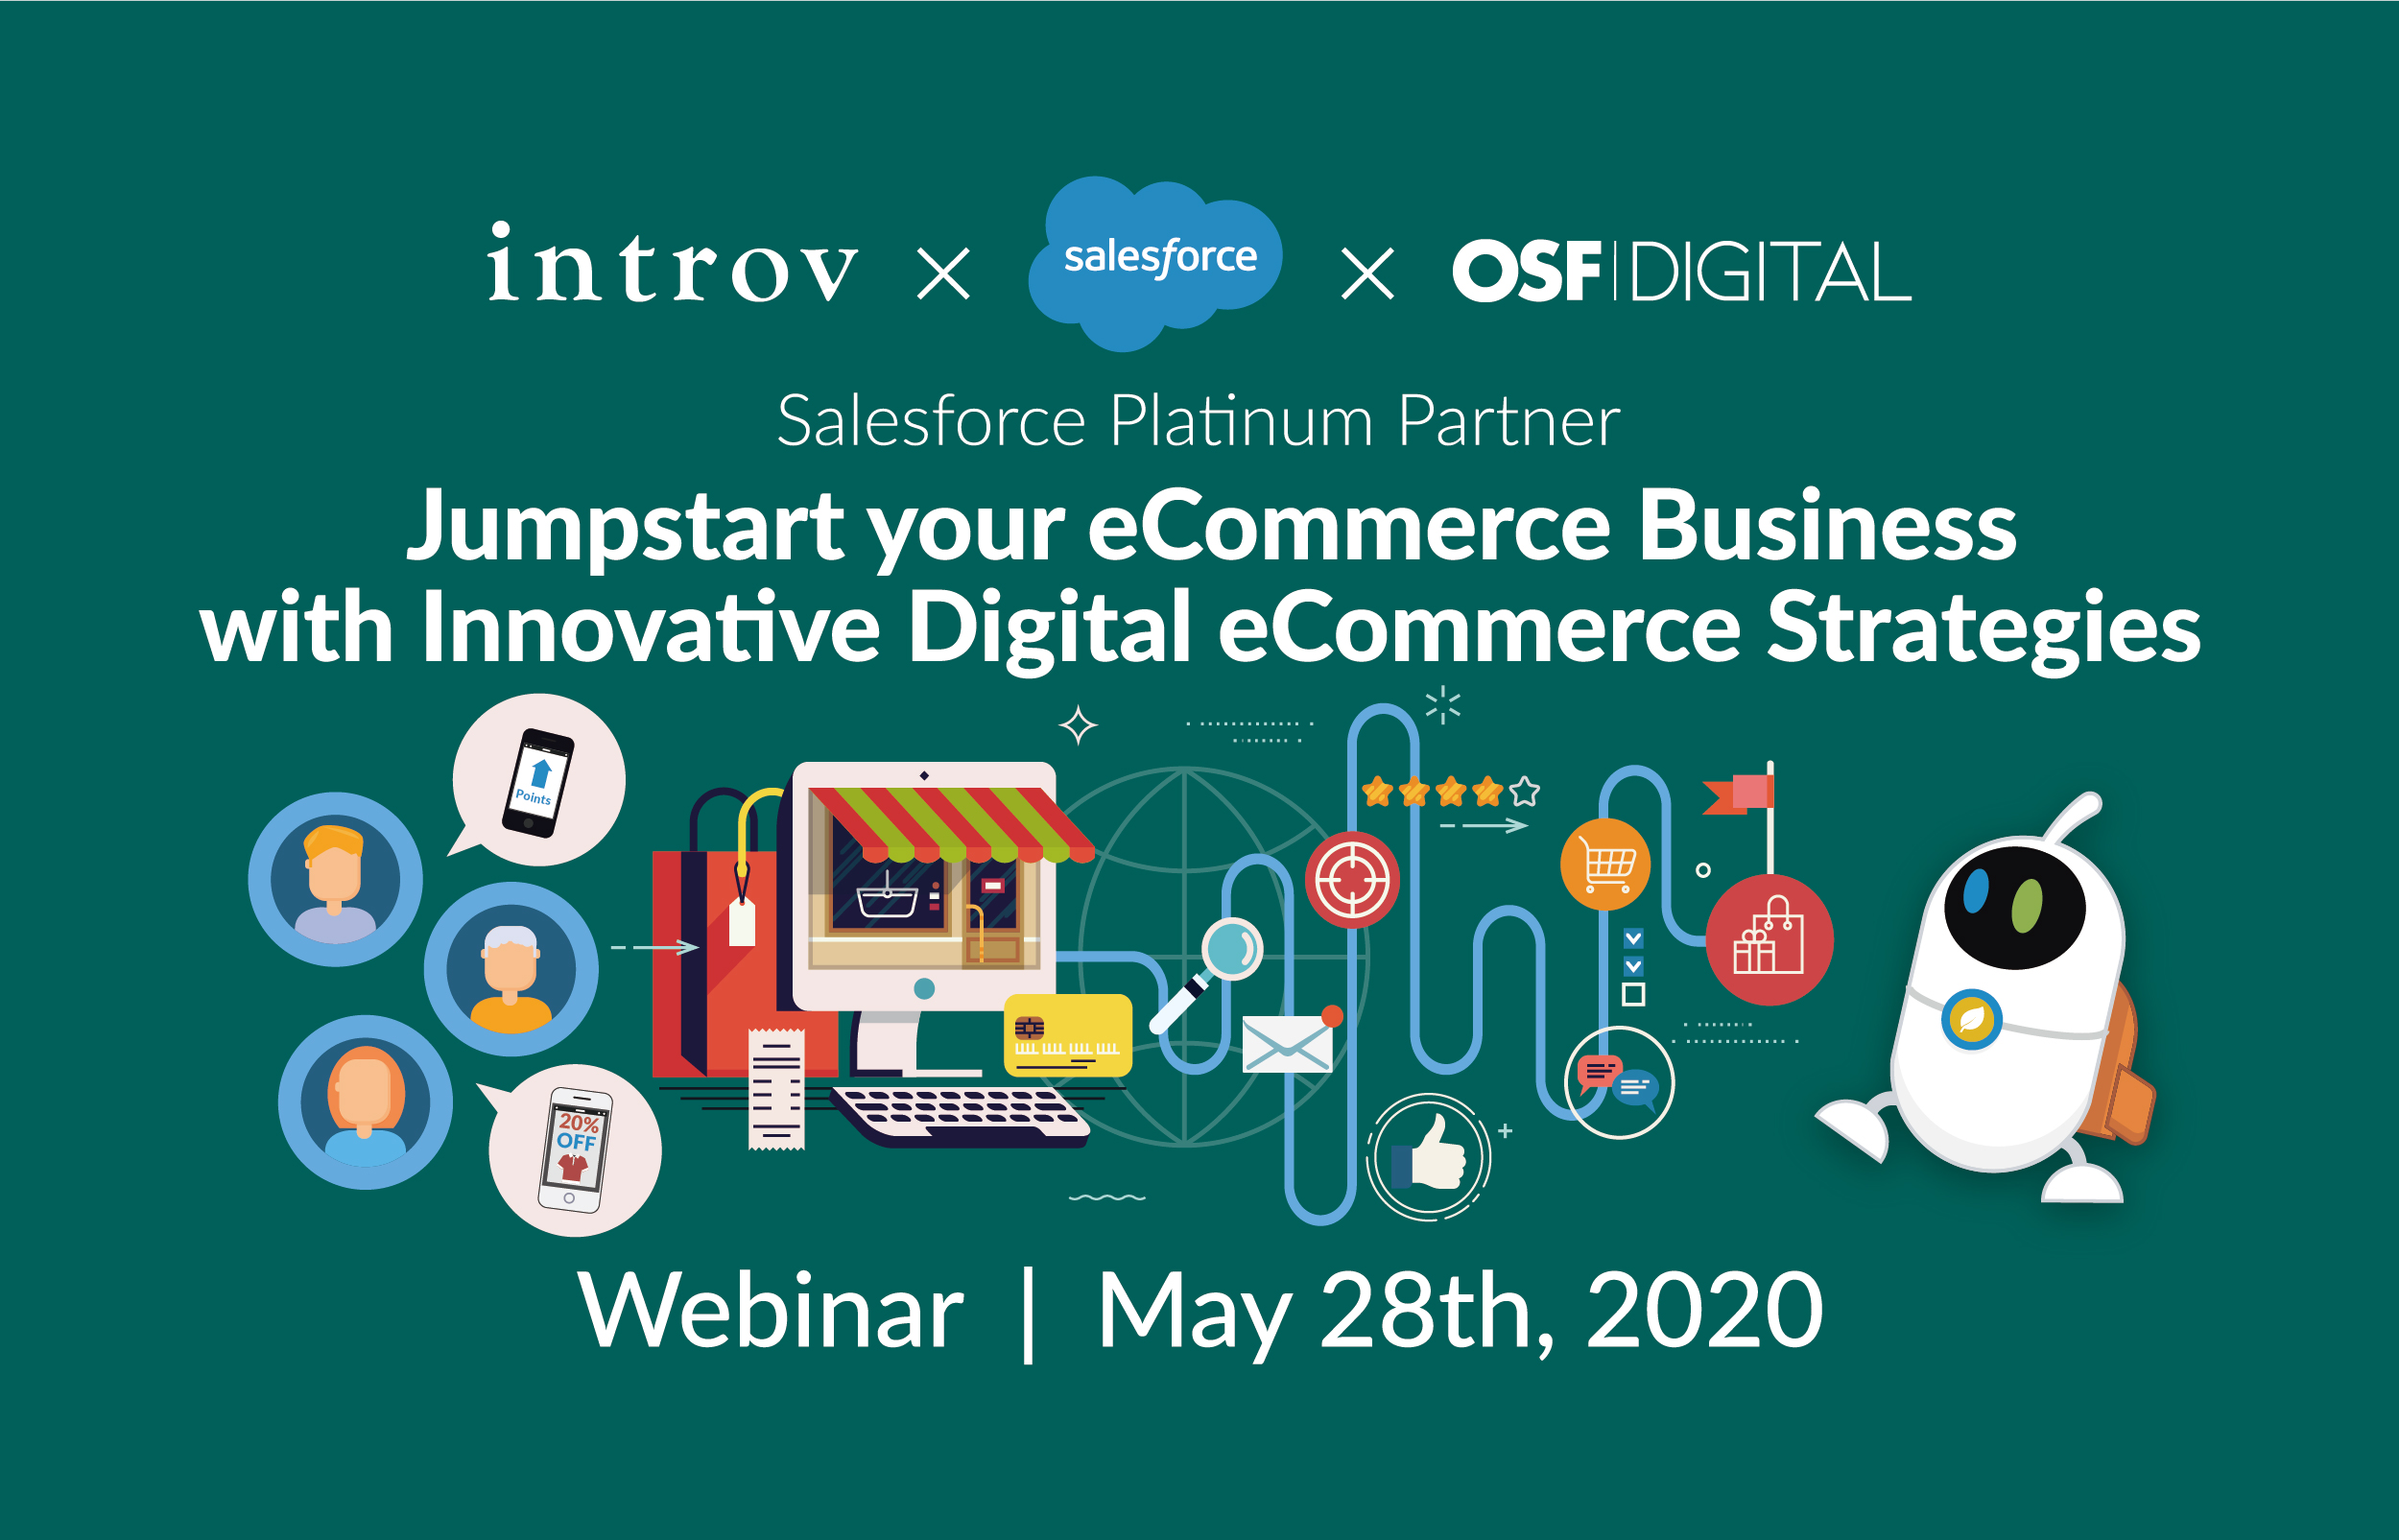 Webinar: Jumpstart your eCommerce Business with Innovative Digital eCommerce Strategies (May 28th, 2020)